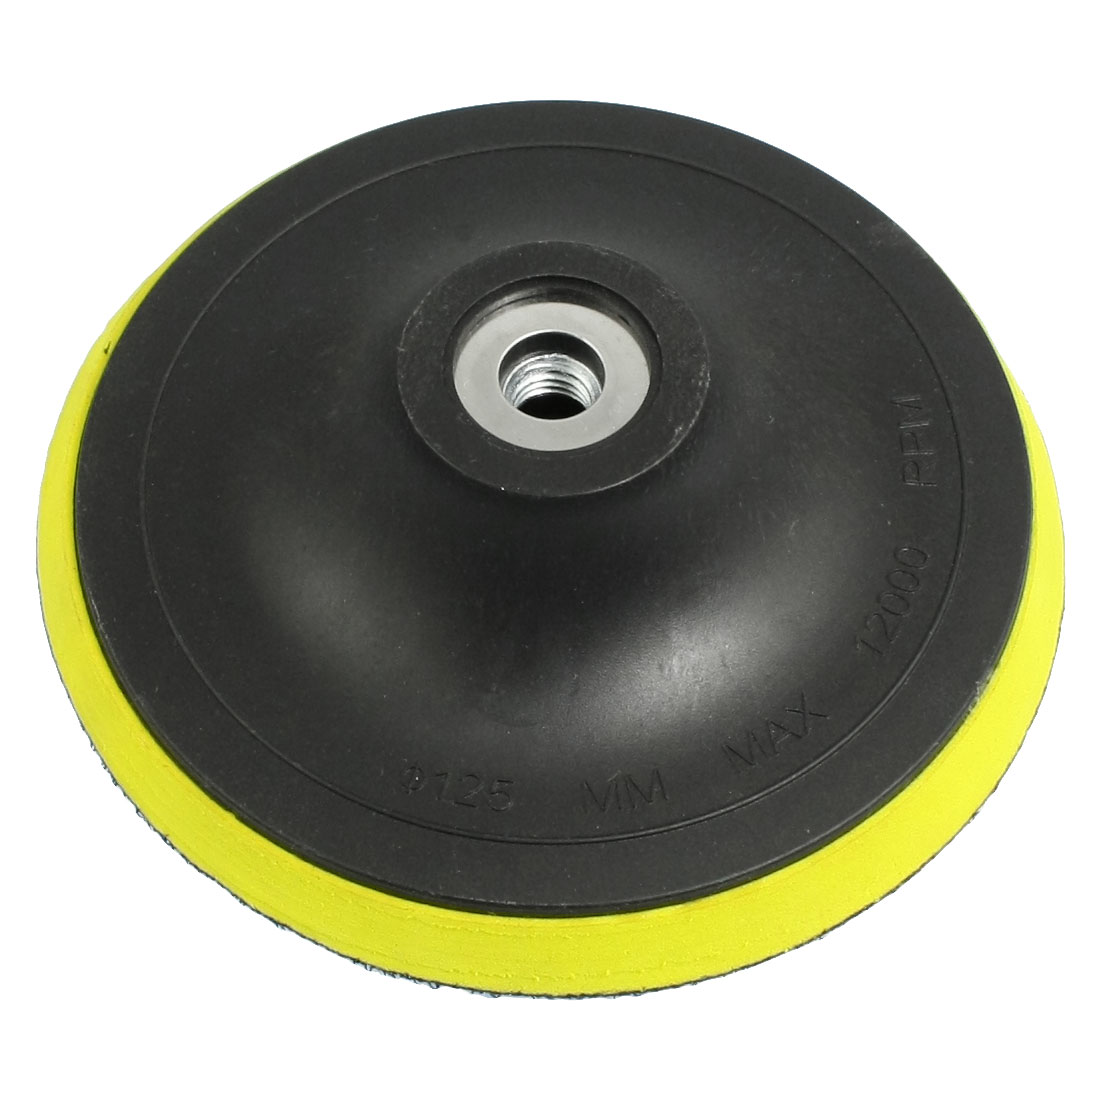 Truck Car Polish Finishing Foam Pad Polisher Black Yellow 4.9""